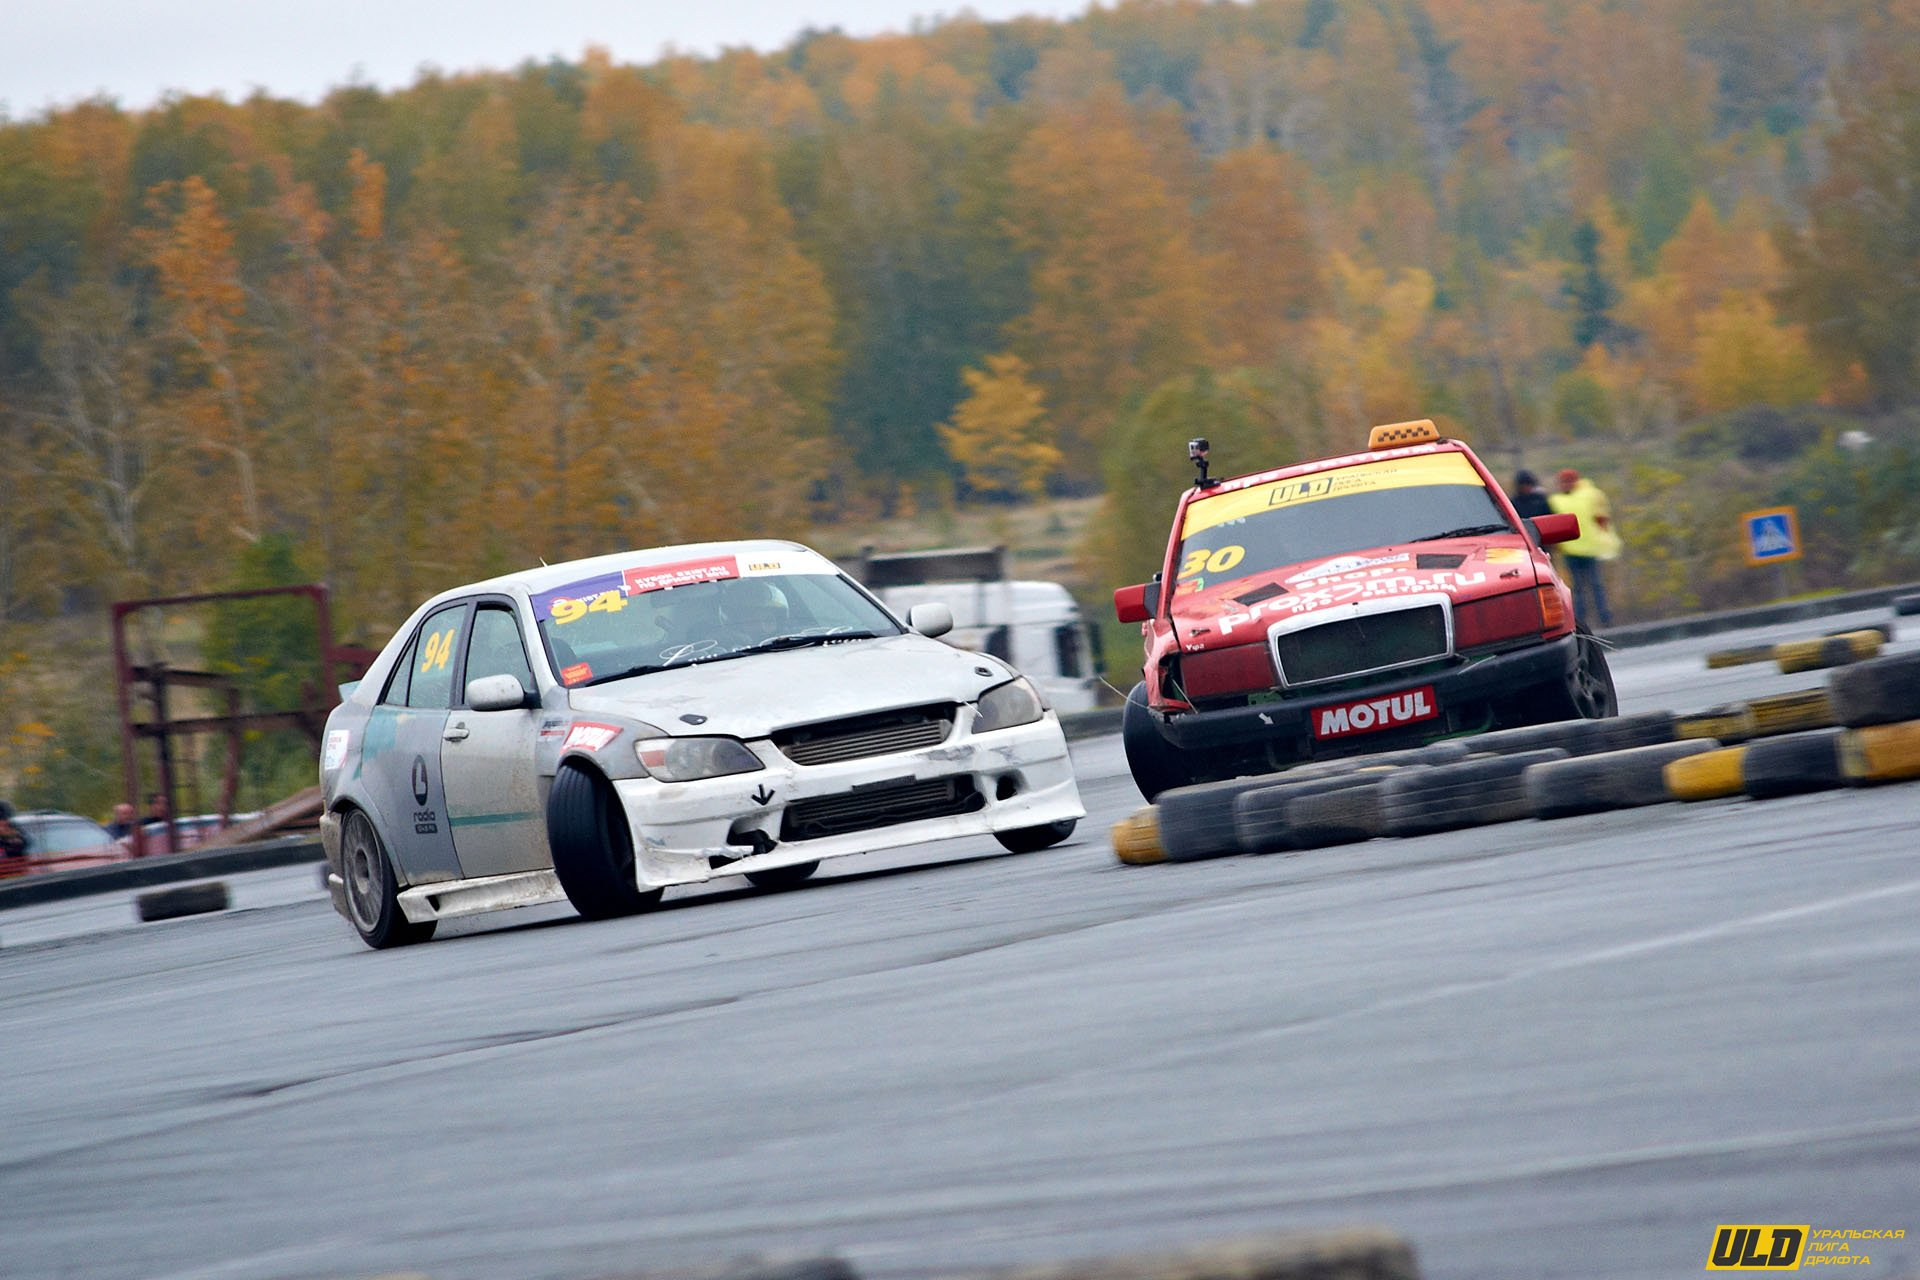 drift_uld_5_stage_2013_aks_14